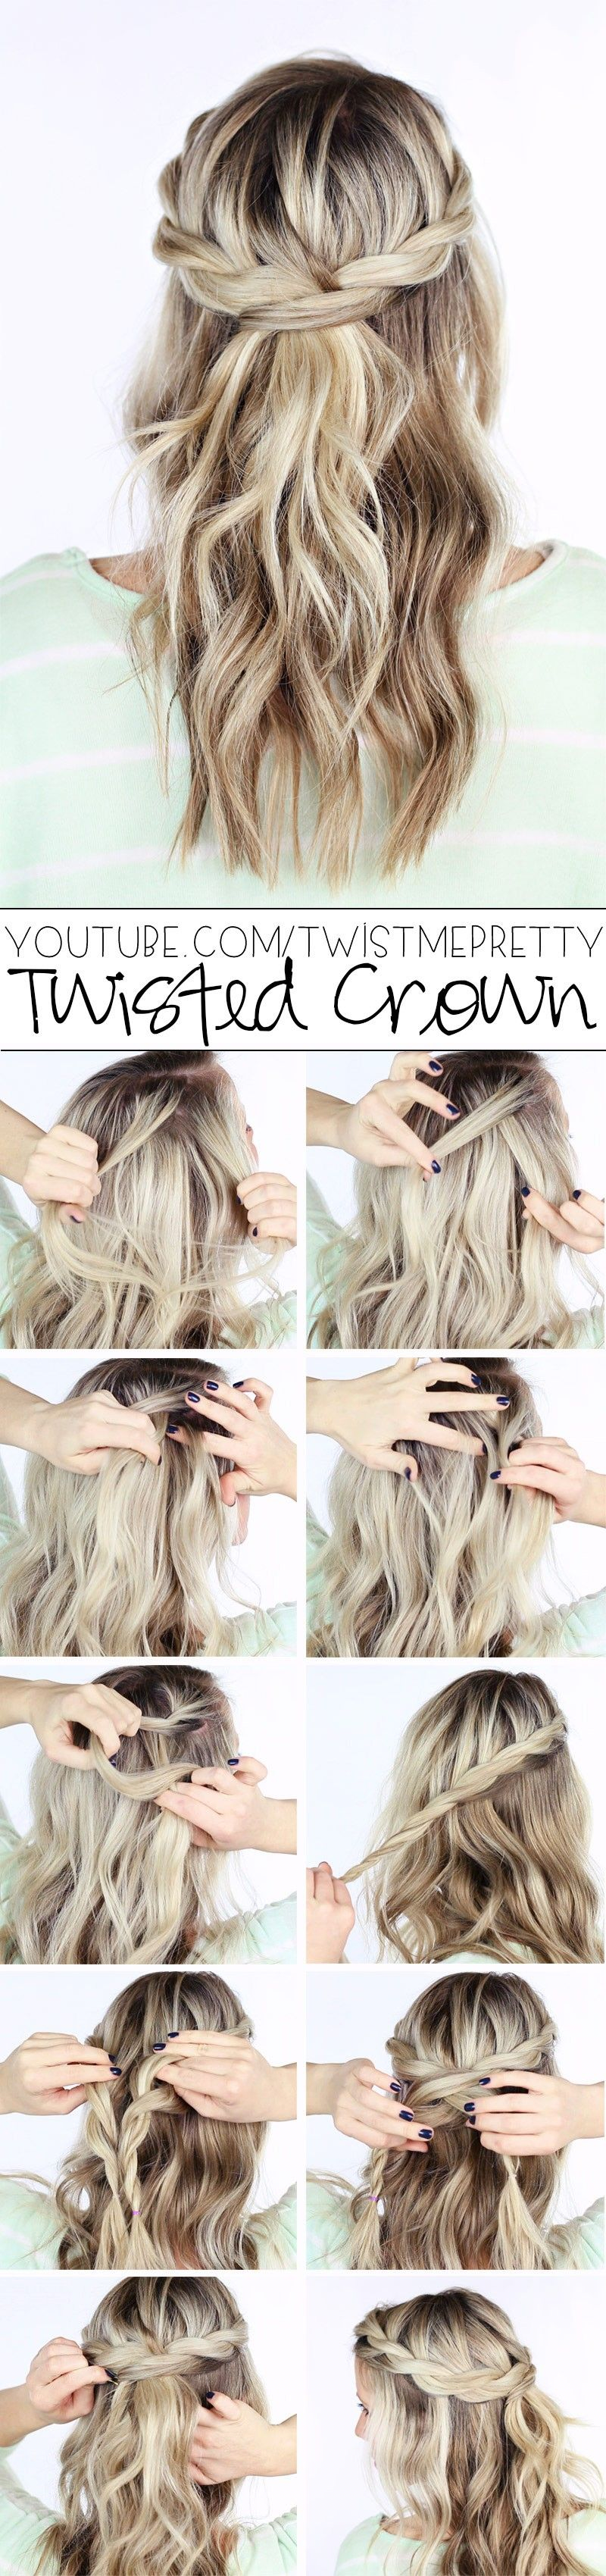 Pin by paulina k on hait pinterest hair style hair makeup and